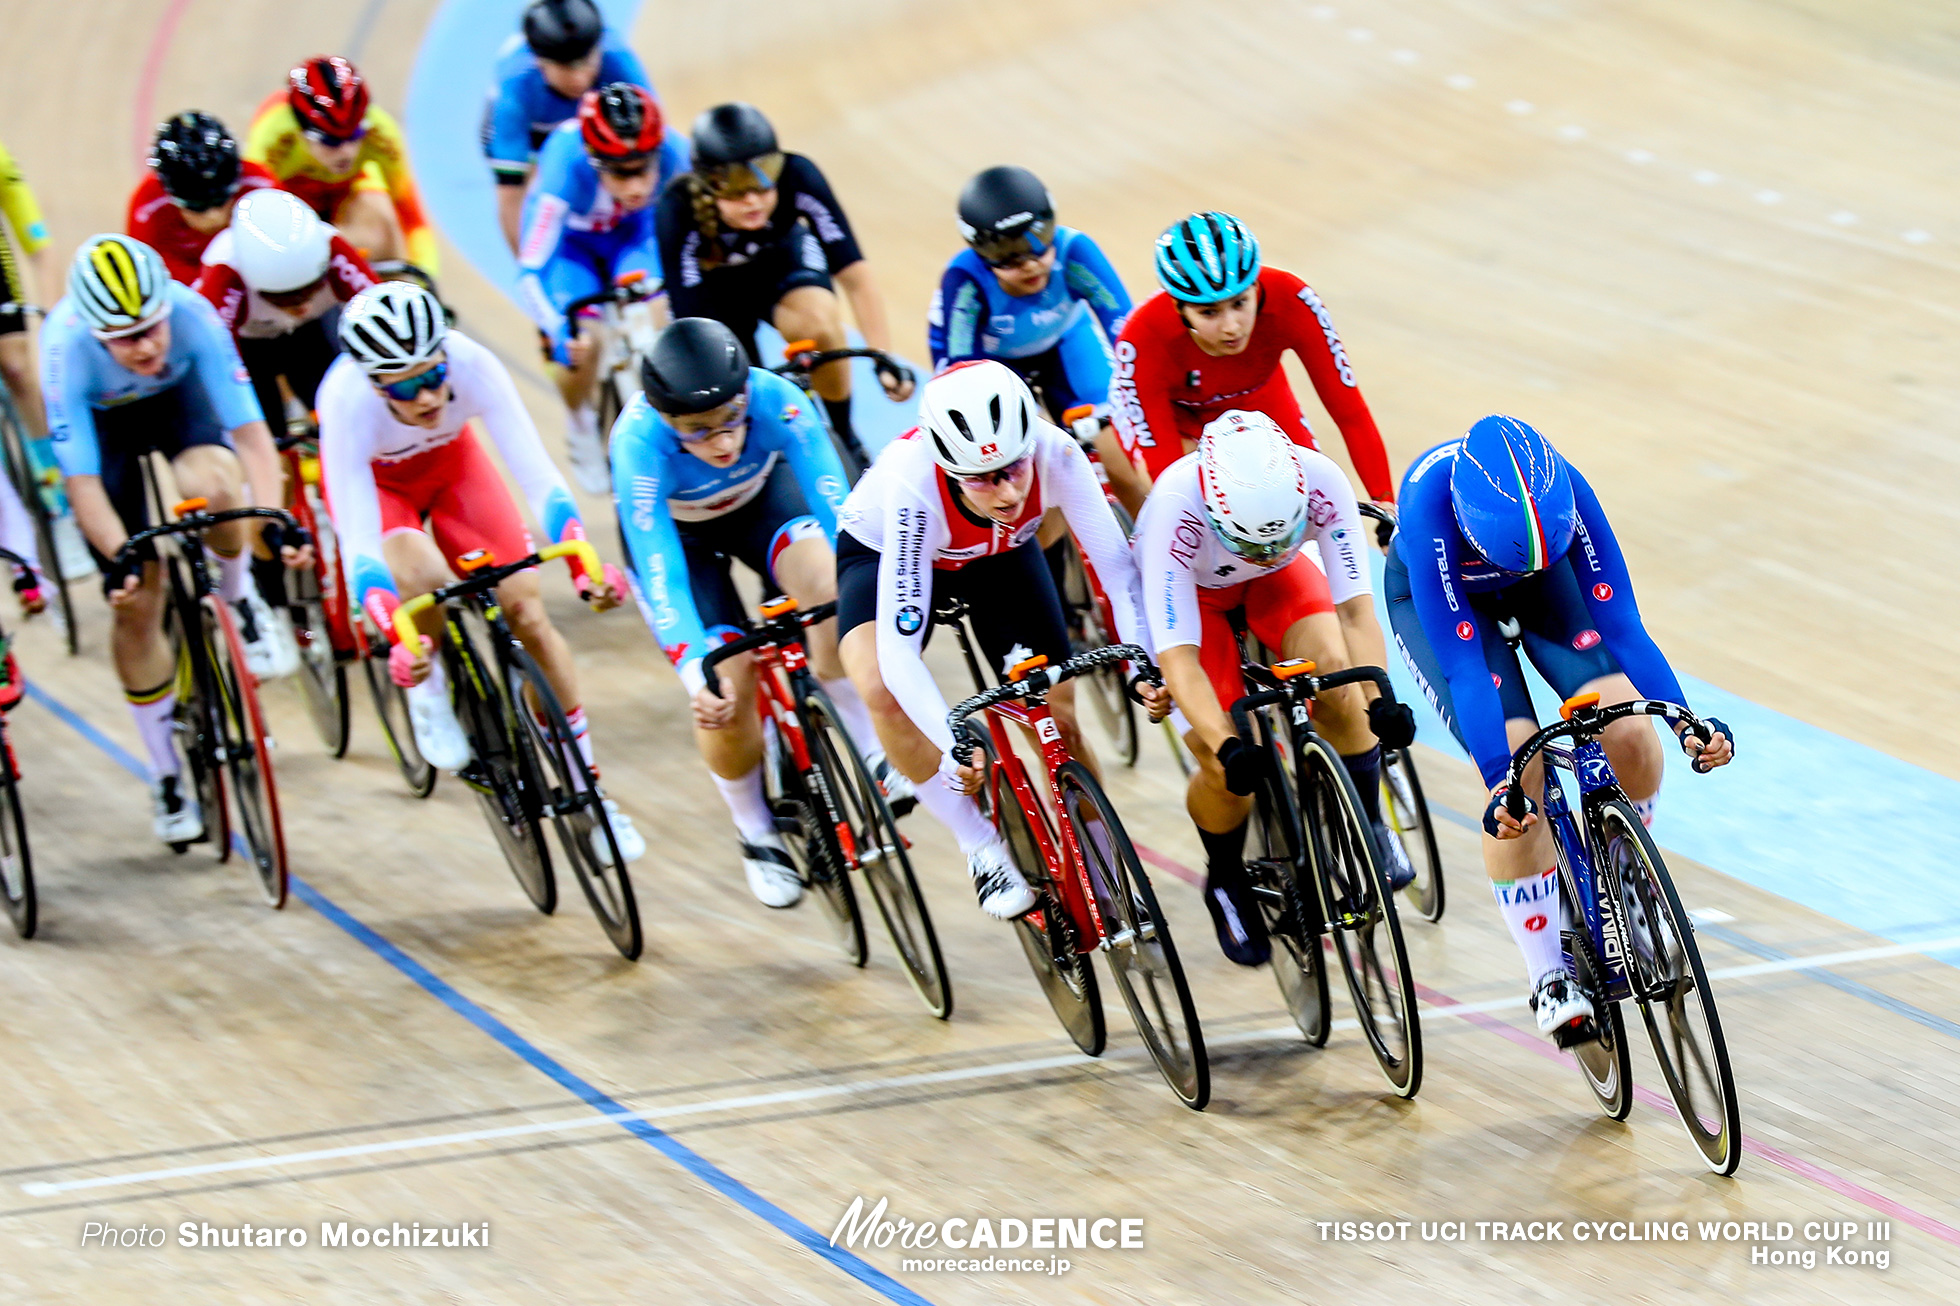 Elimination / Women's Omnium / TISSOT UCI TRACK CYCLING WORLD CUP III, Hong Kong